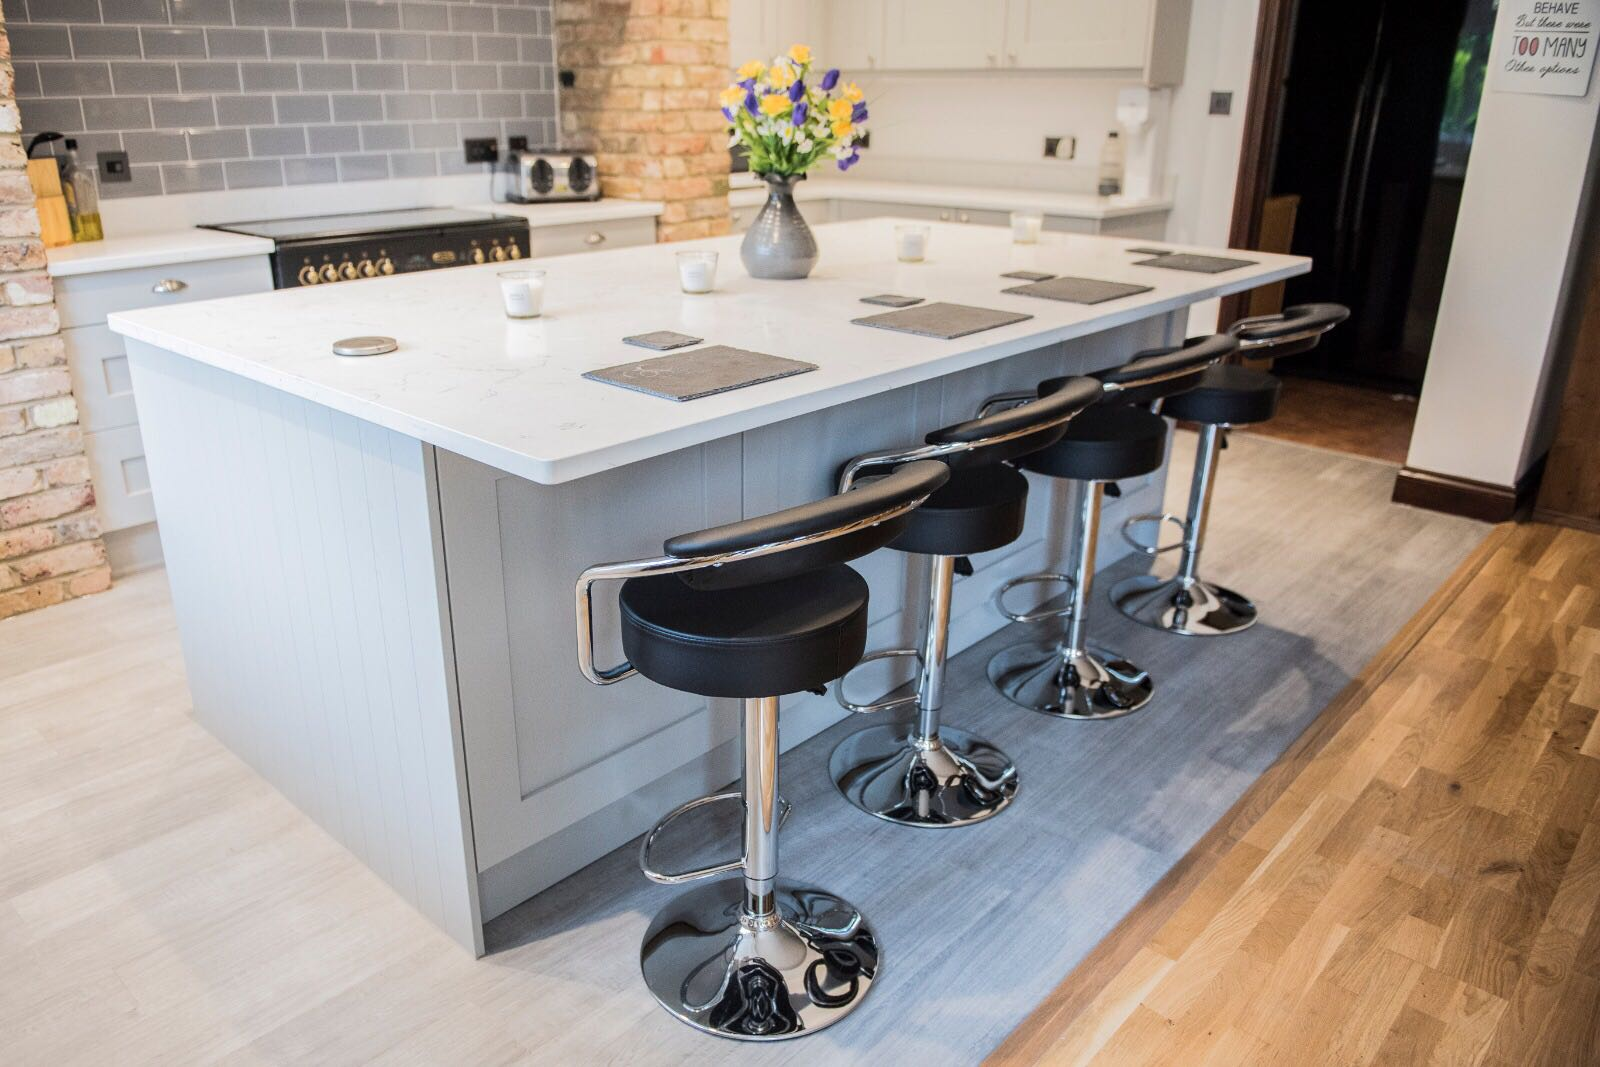 Is There Room For A Kitchen Island? Rock And Co Granite Ltd